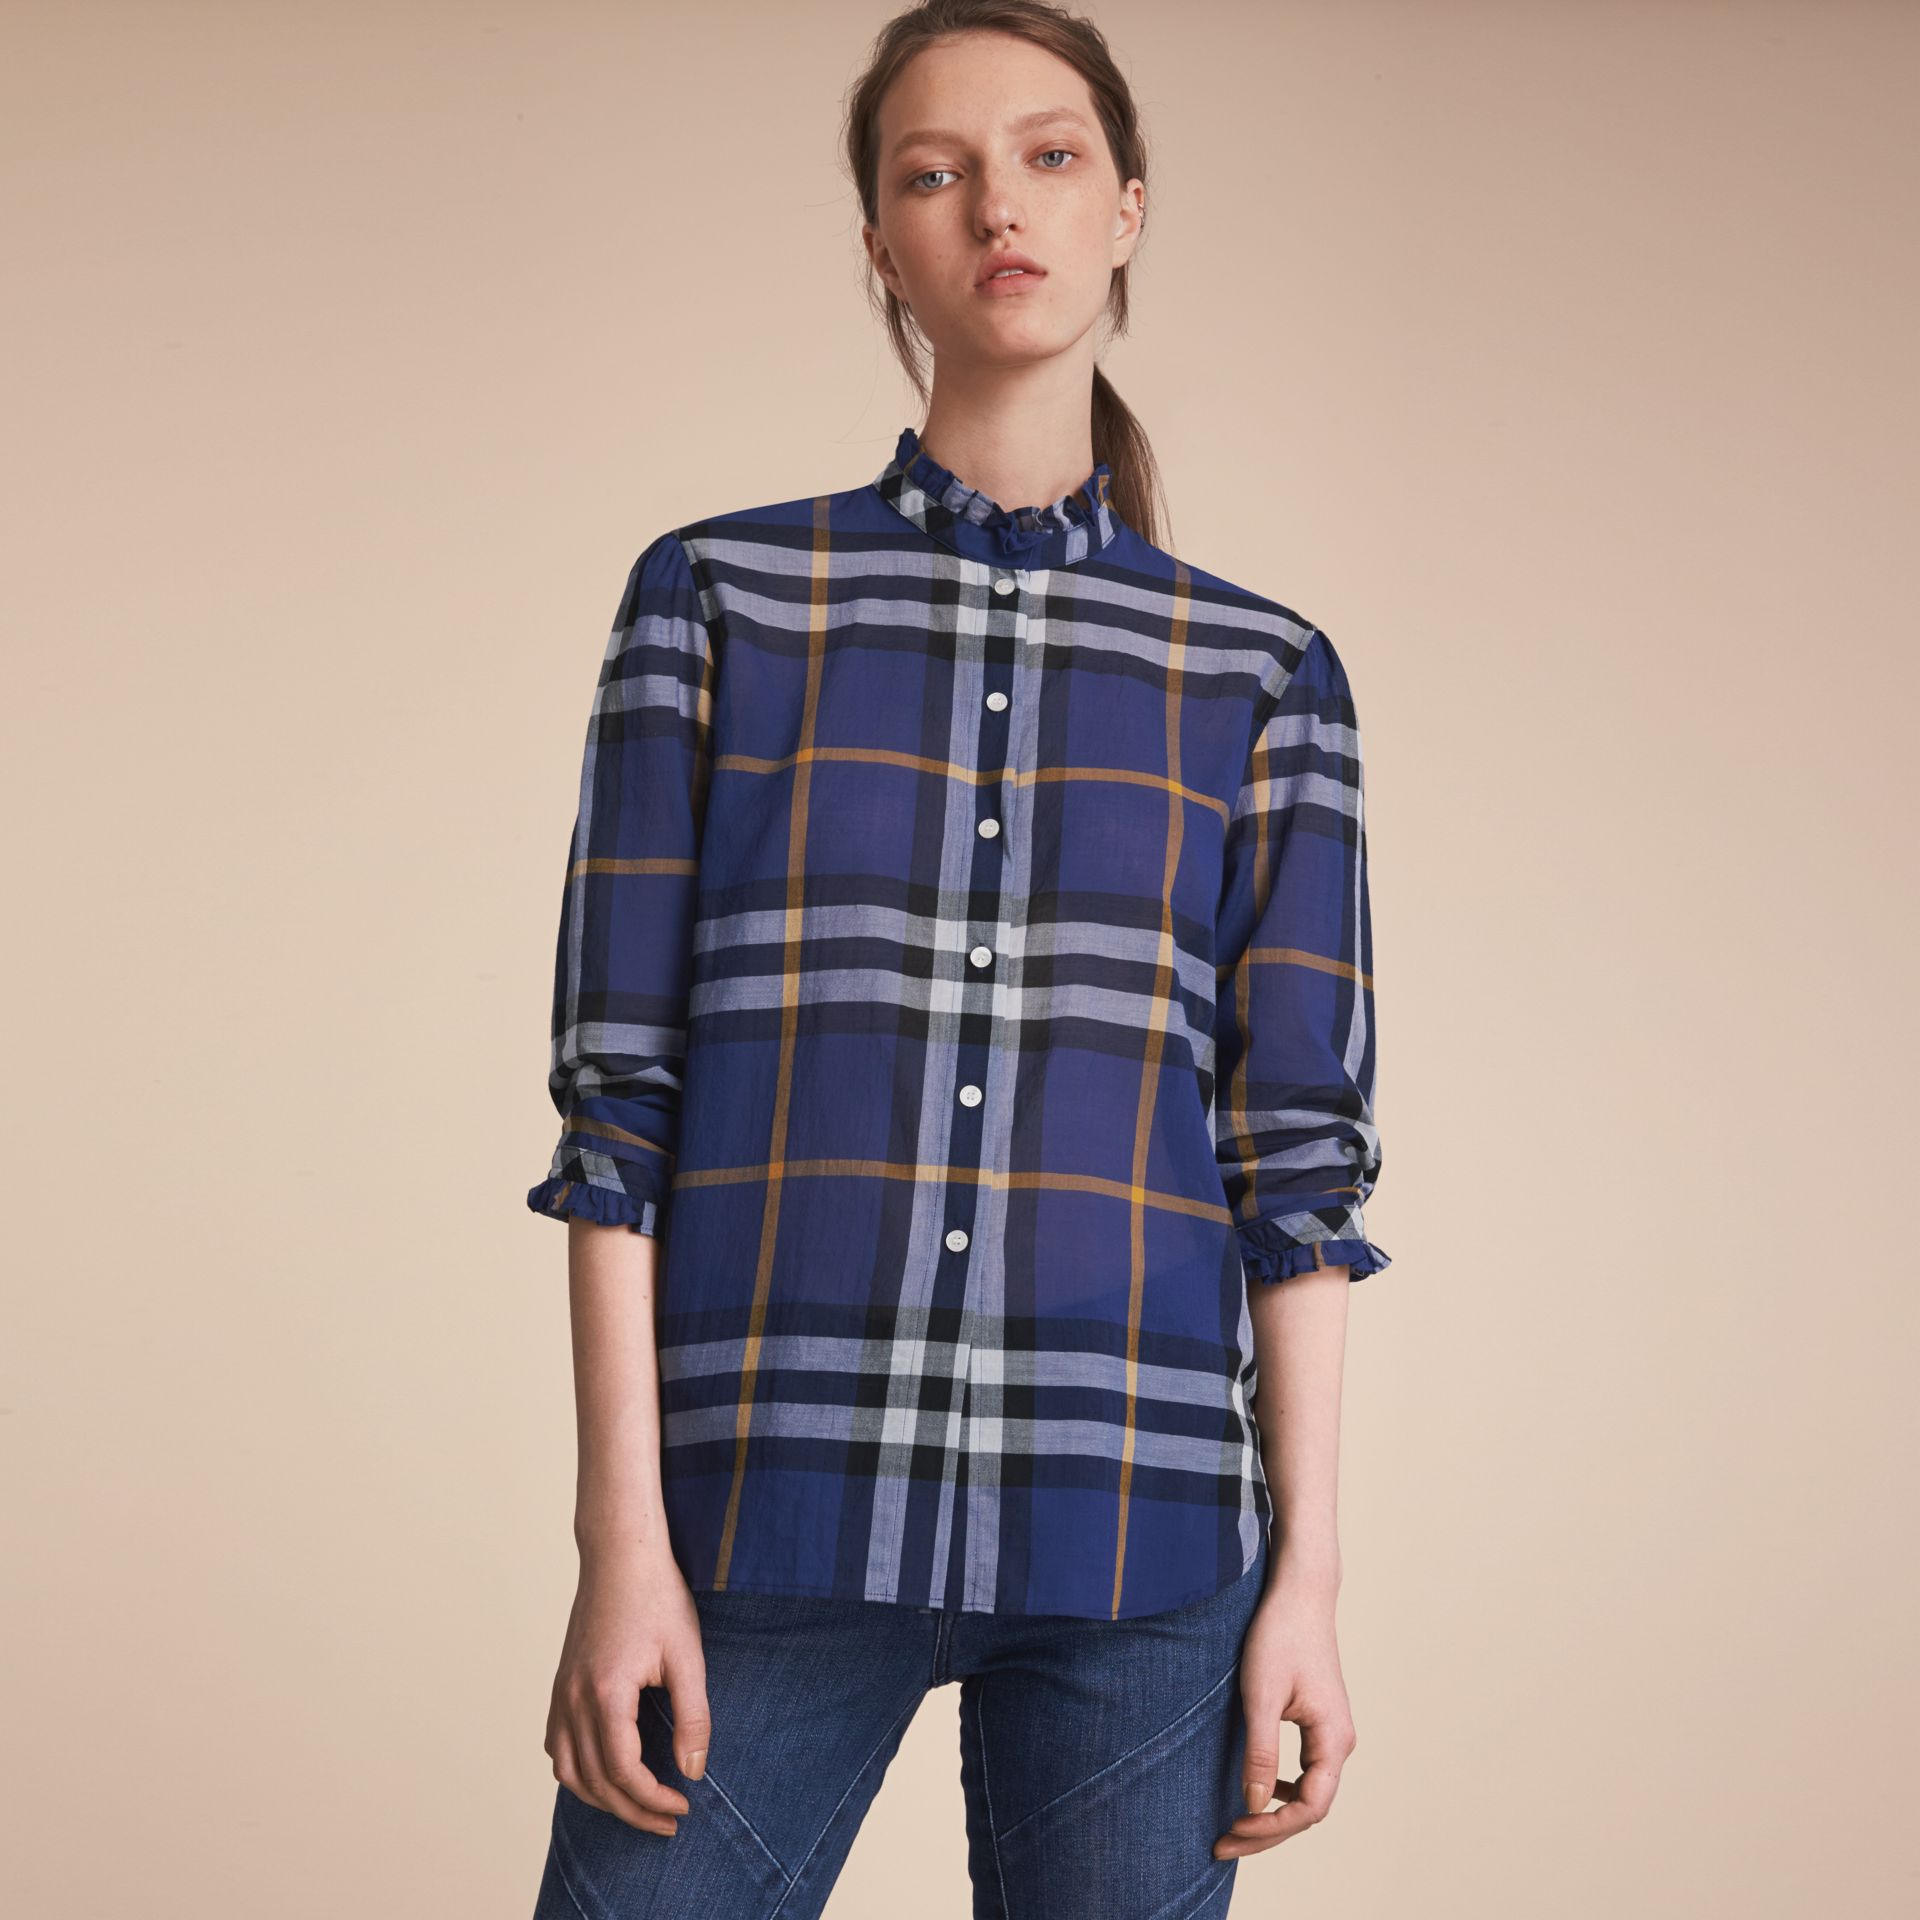 Ruffle Detail Check Cotton Shirt in Lapis Blue - Women | Burberry Australia - gallery image 6